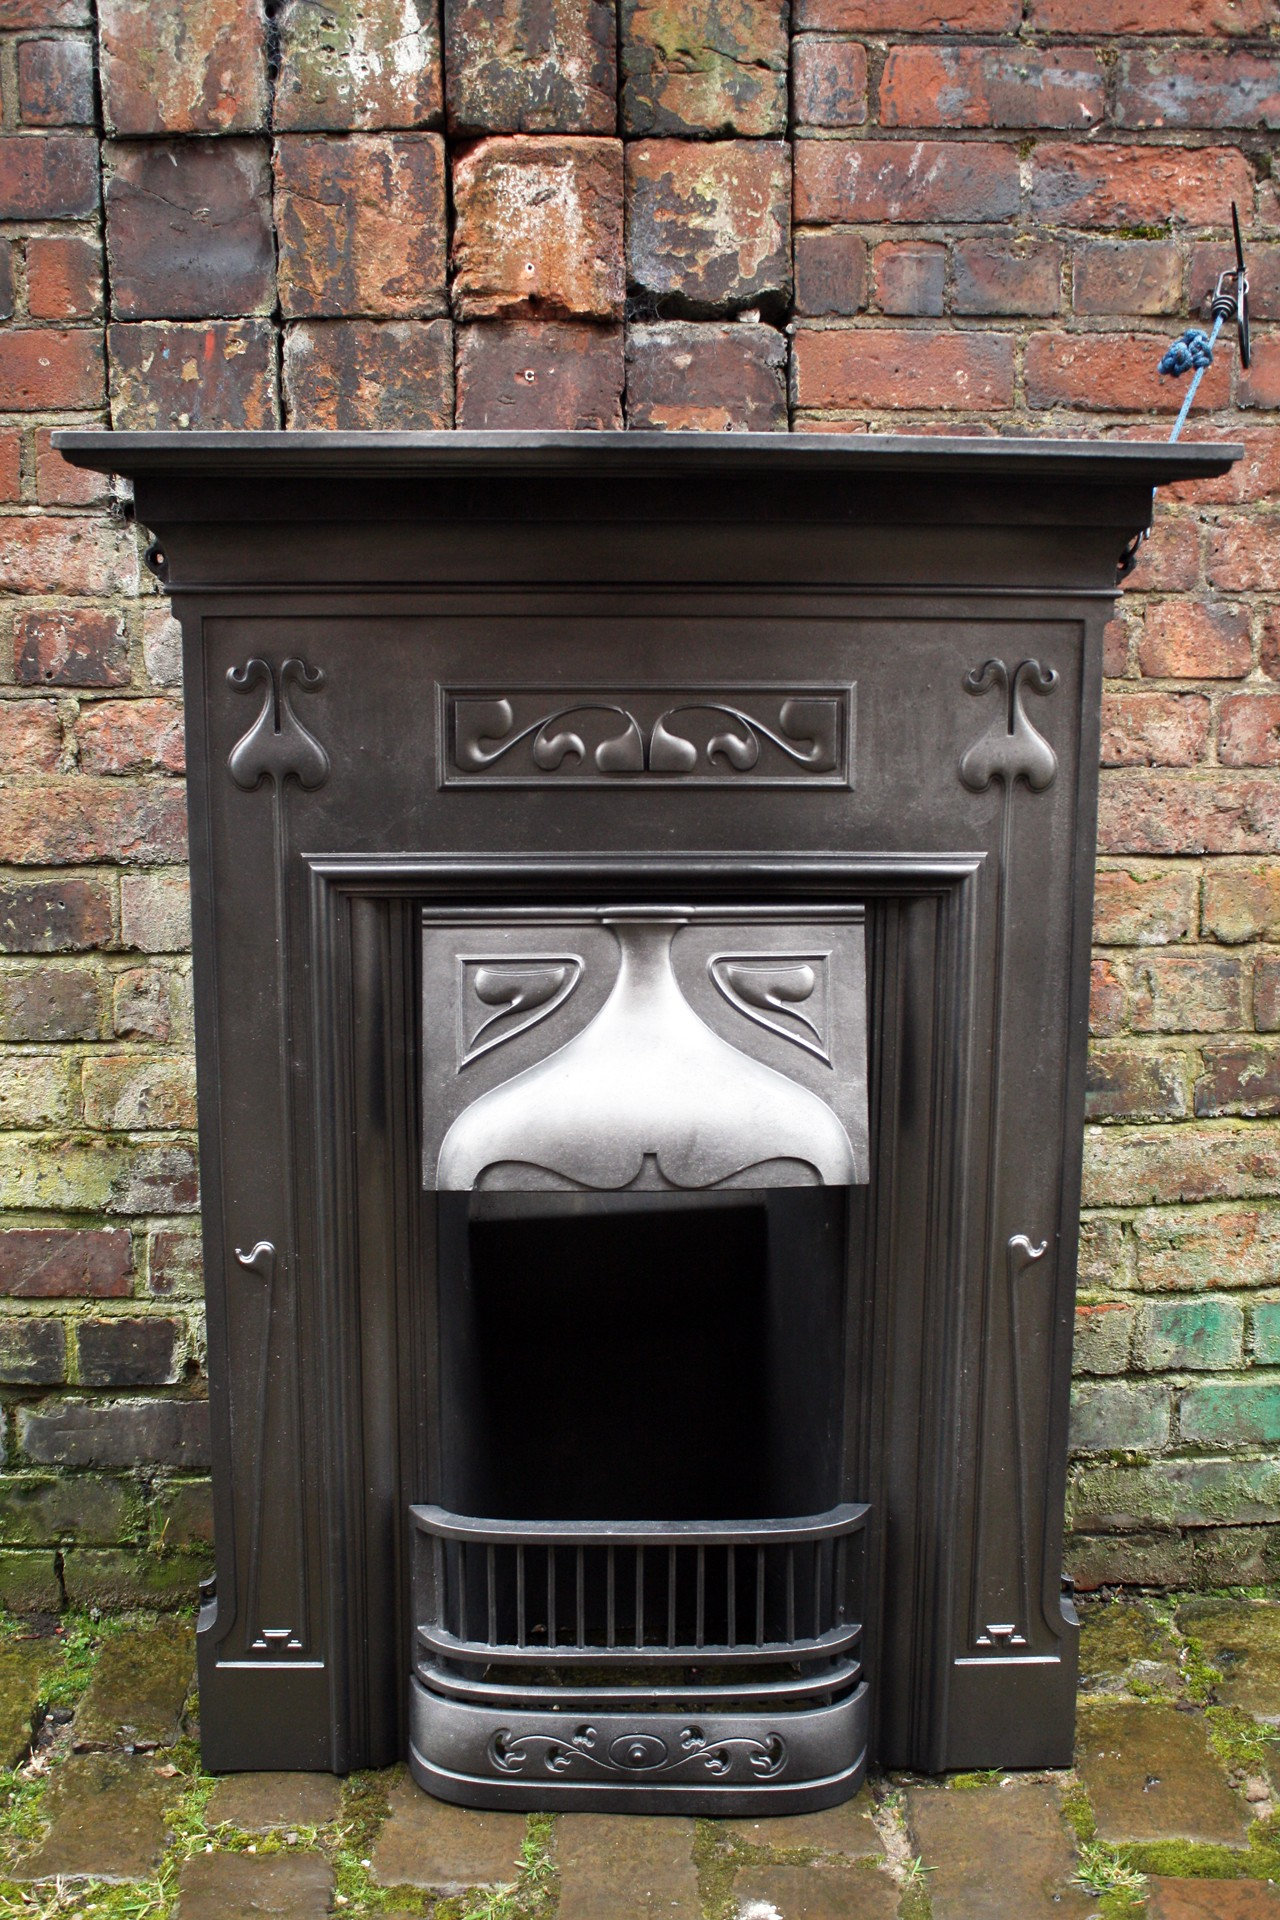 Edwardian Art Nouveau Restored Combination Fire Grate